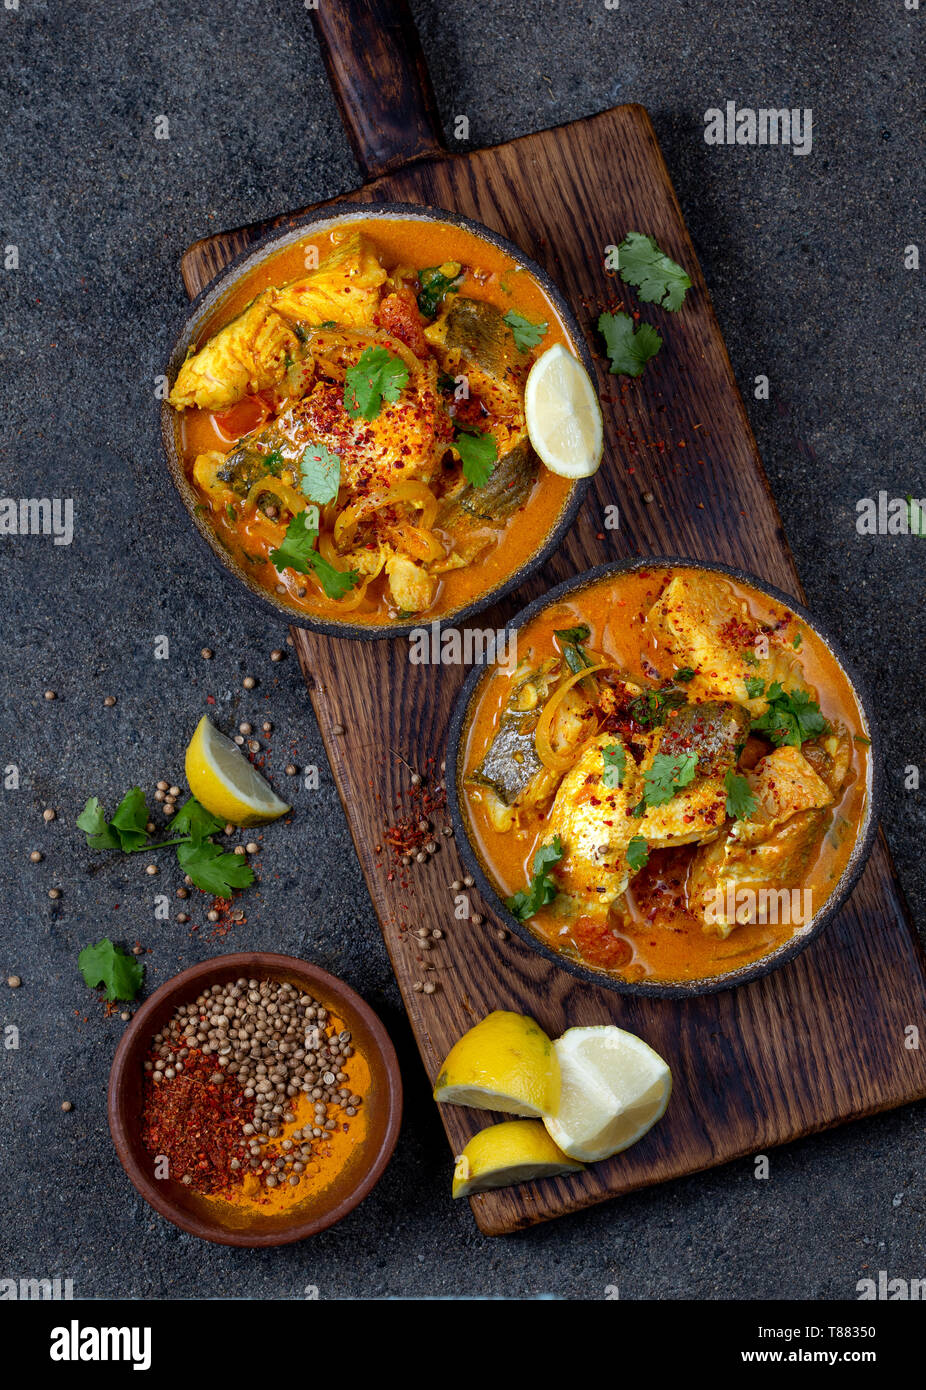 INDIAN FOOD. Traditional KERALA FISH CURRY with naan bread, gray plate, black background  - Stock Image